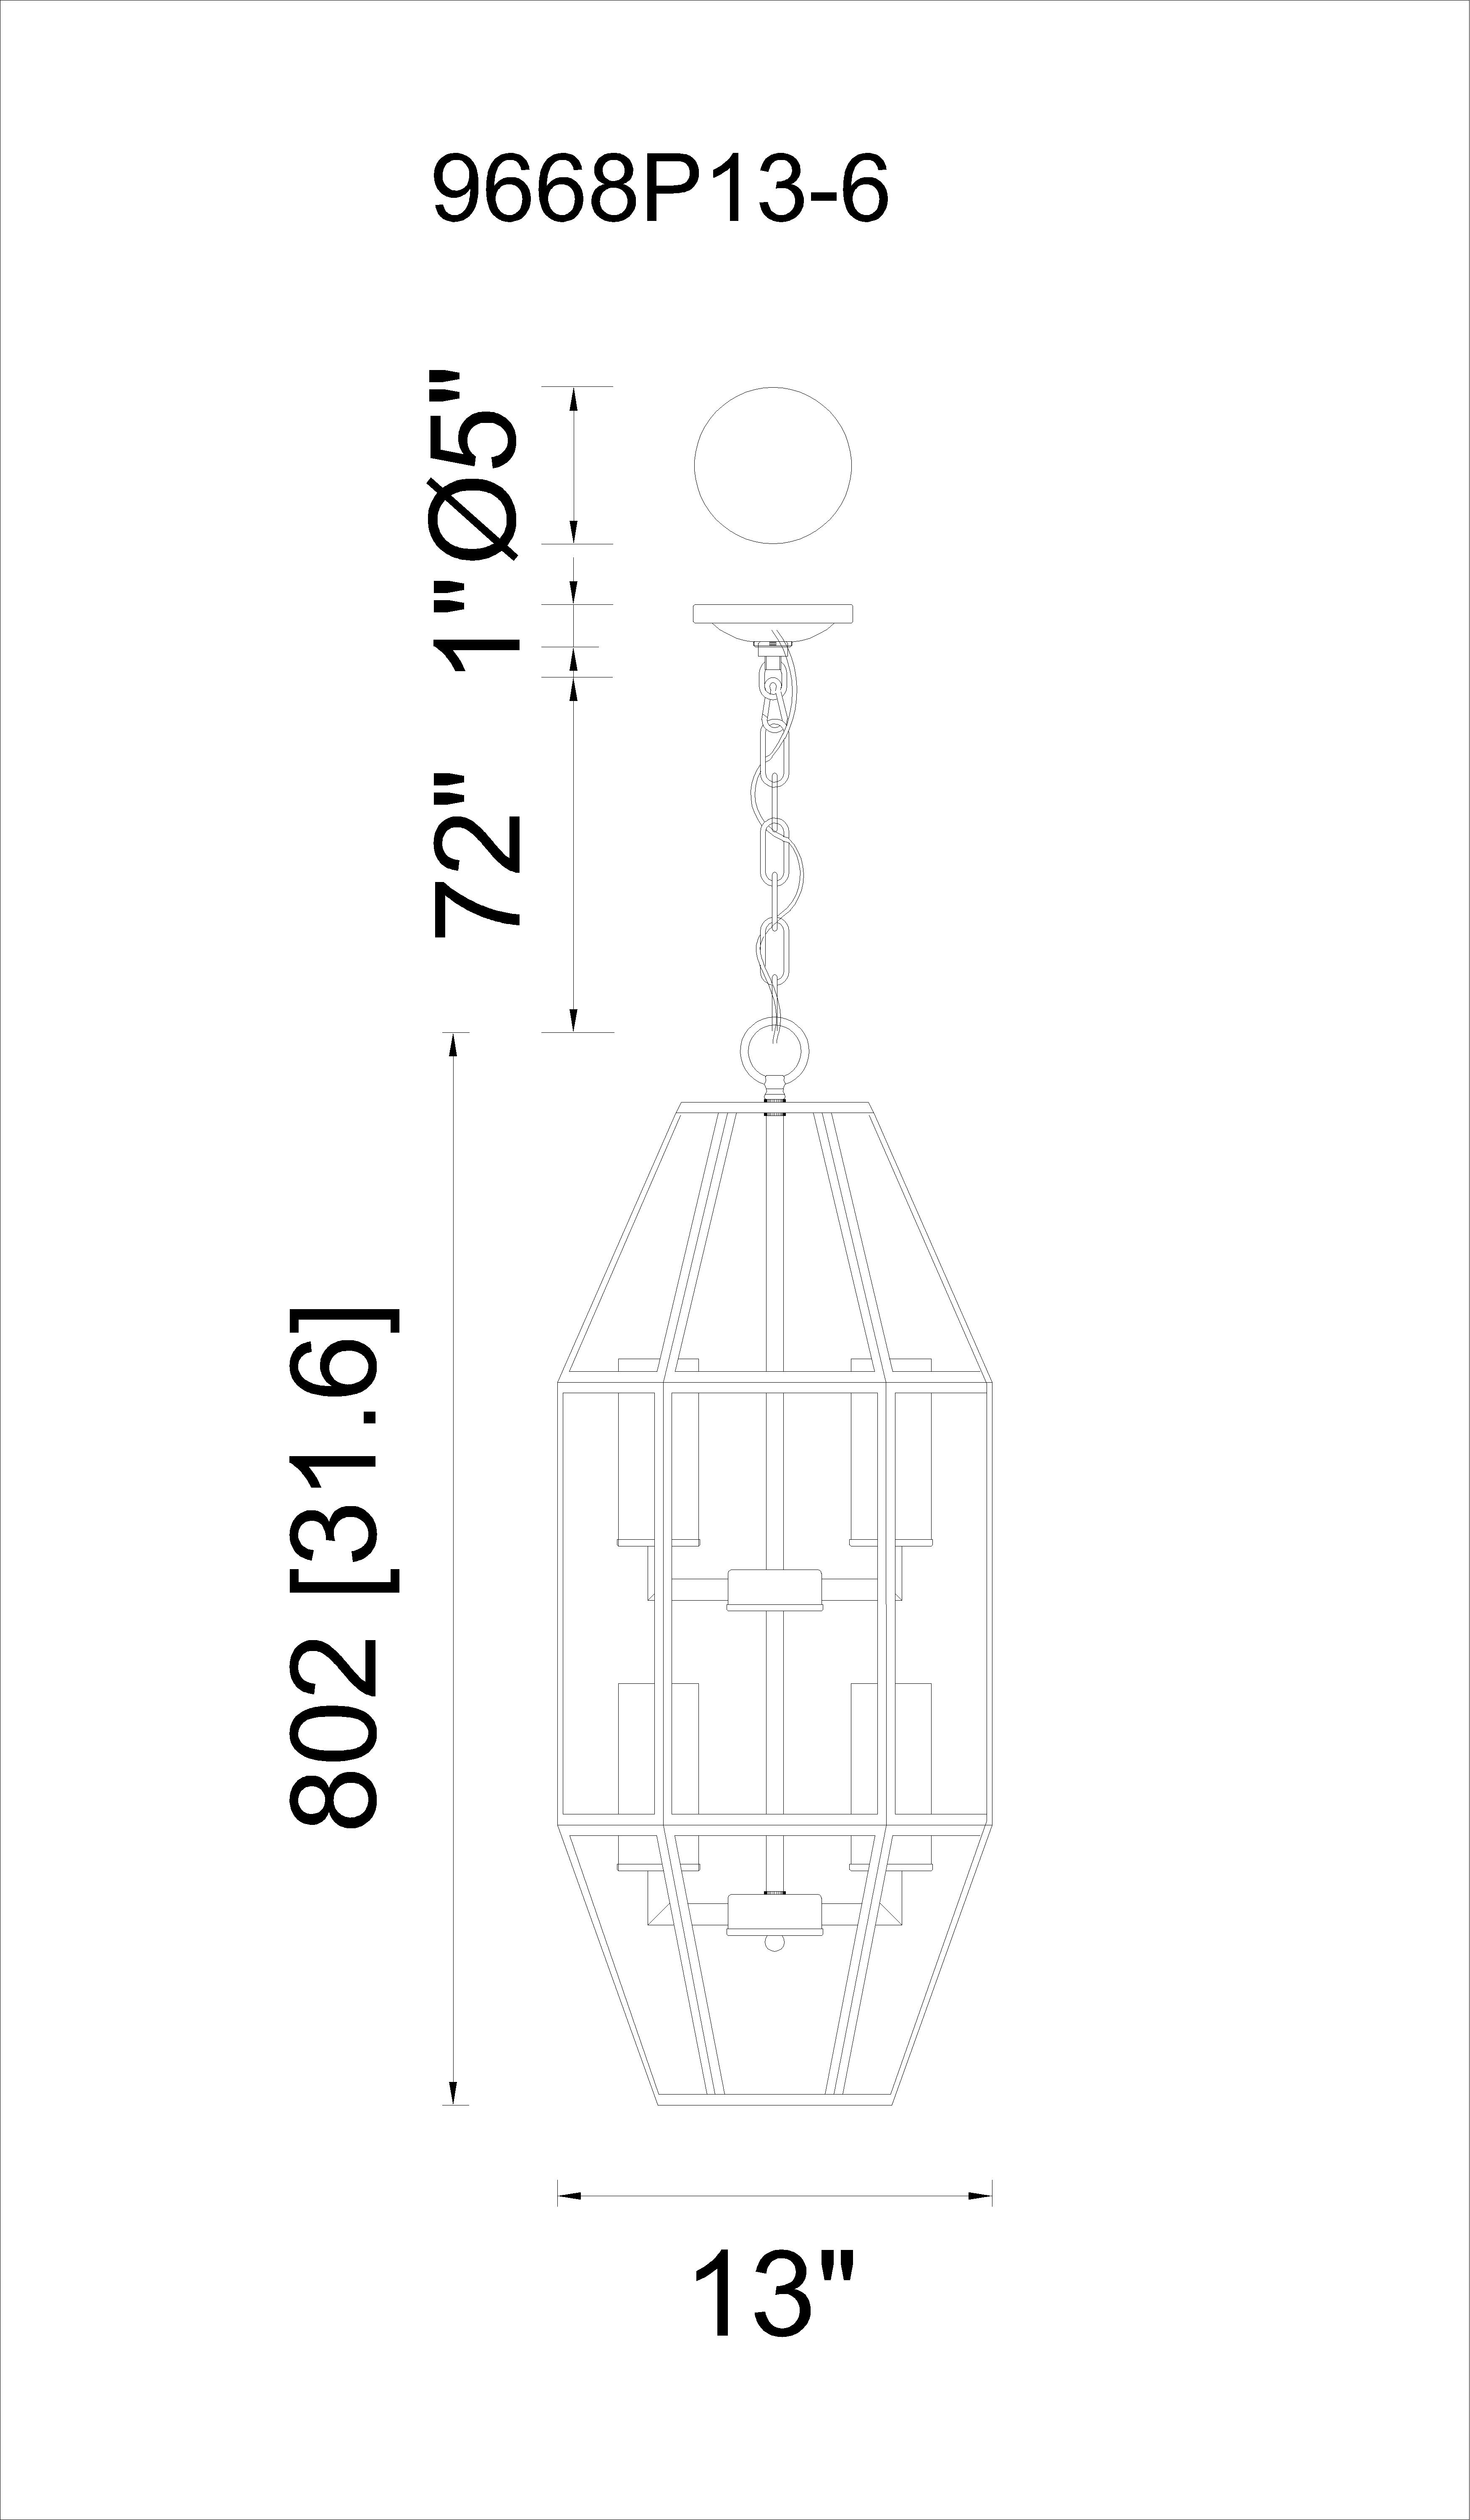 CWI Lighting Cell 6 Light Candle Pendant With Black Finish Model: 9668P13-6-S-101 Line Drawing